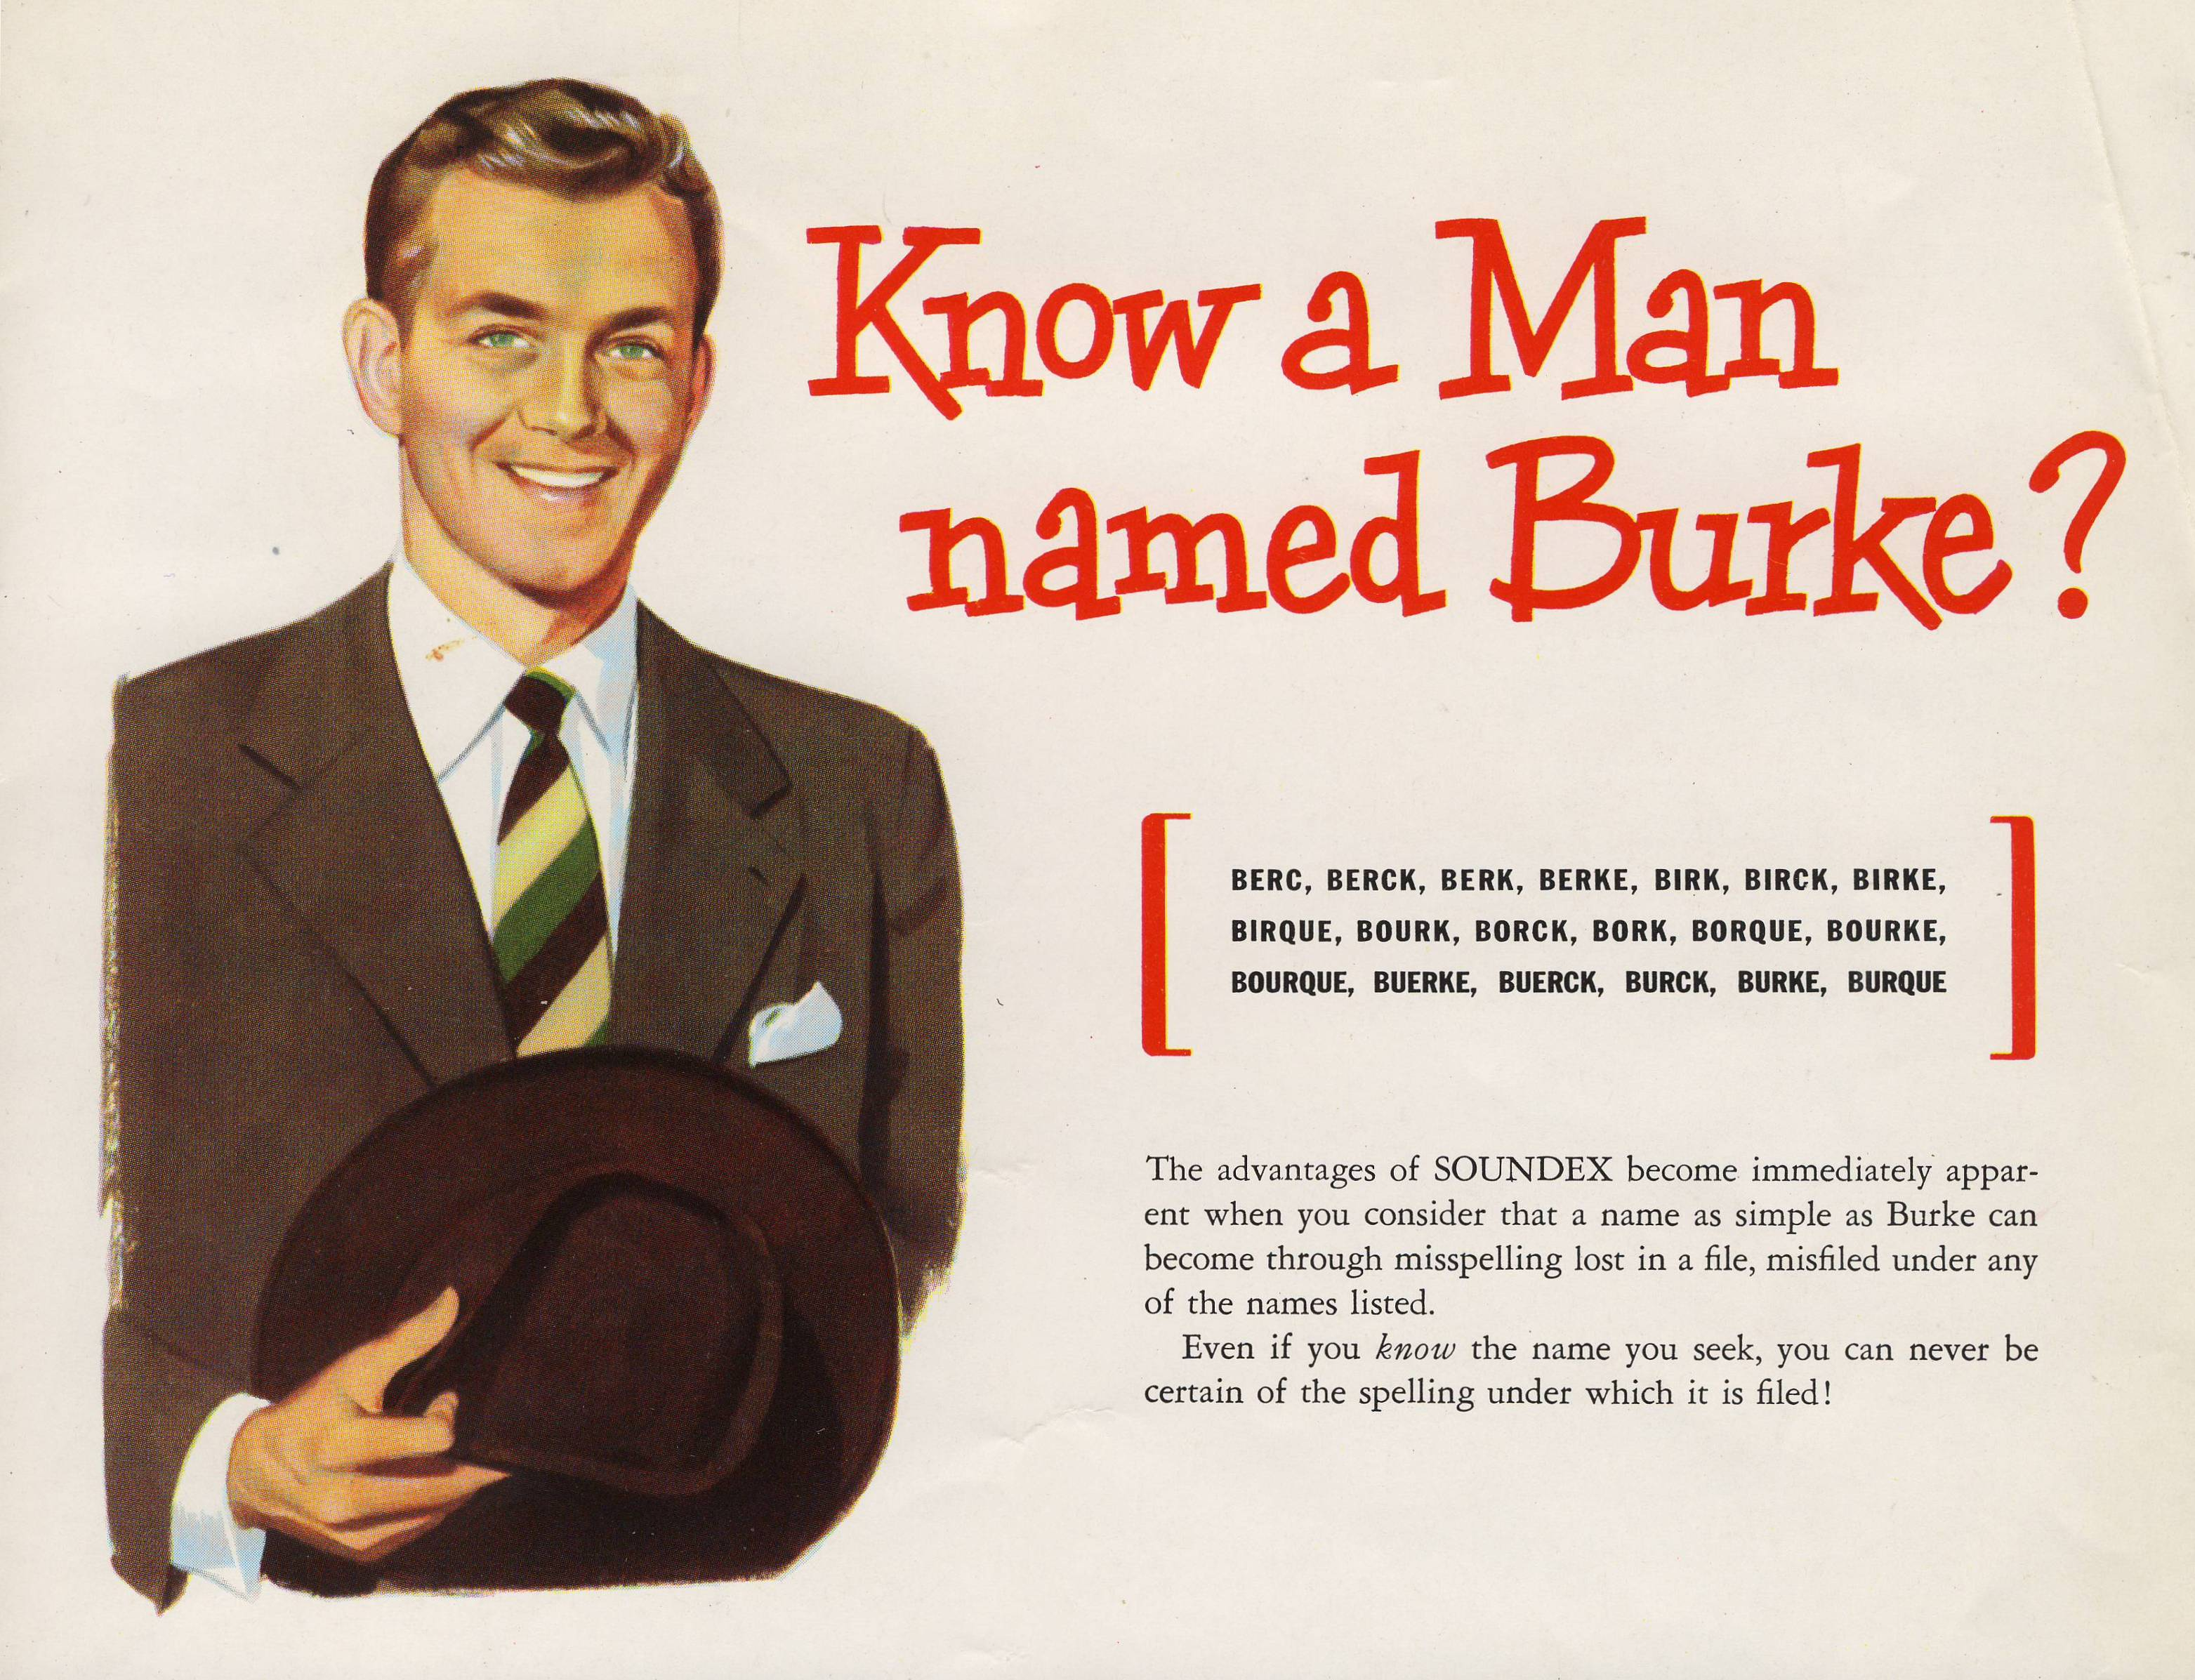 Know a Man Named Burke, from Soundex Catalog - RG 64, P 169, file Policy - Referral of Letters to INS.jpg